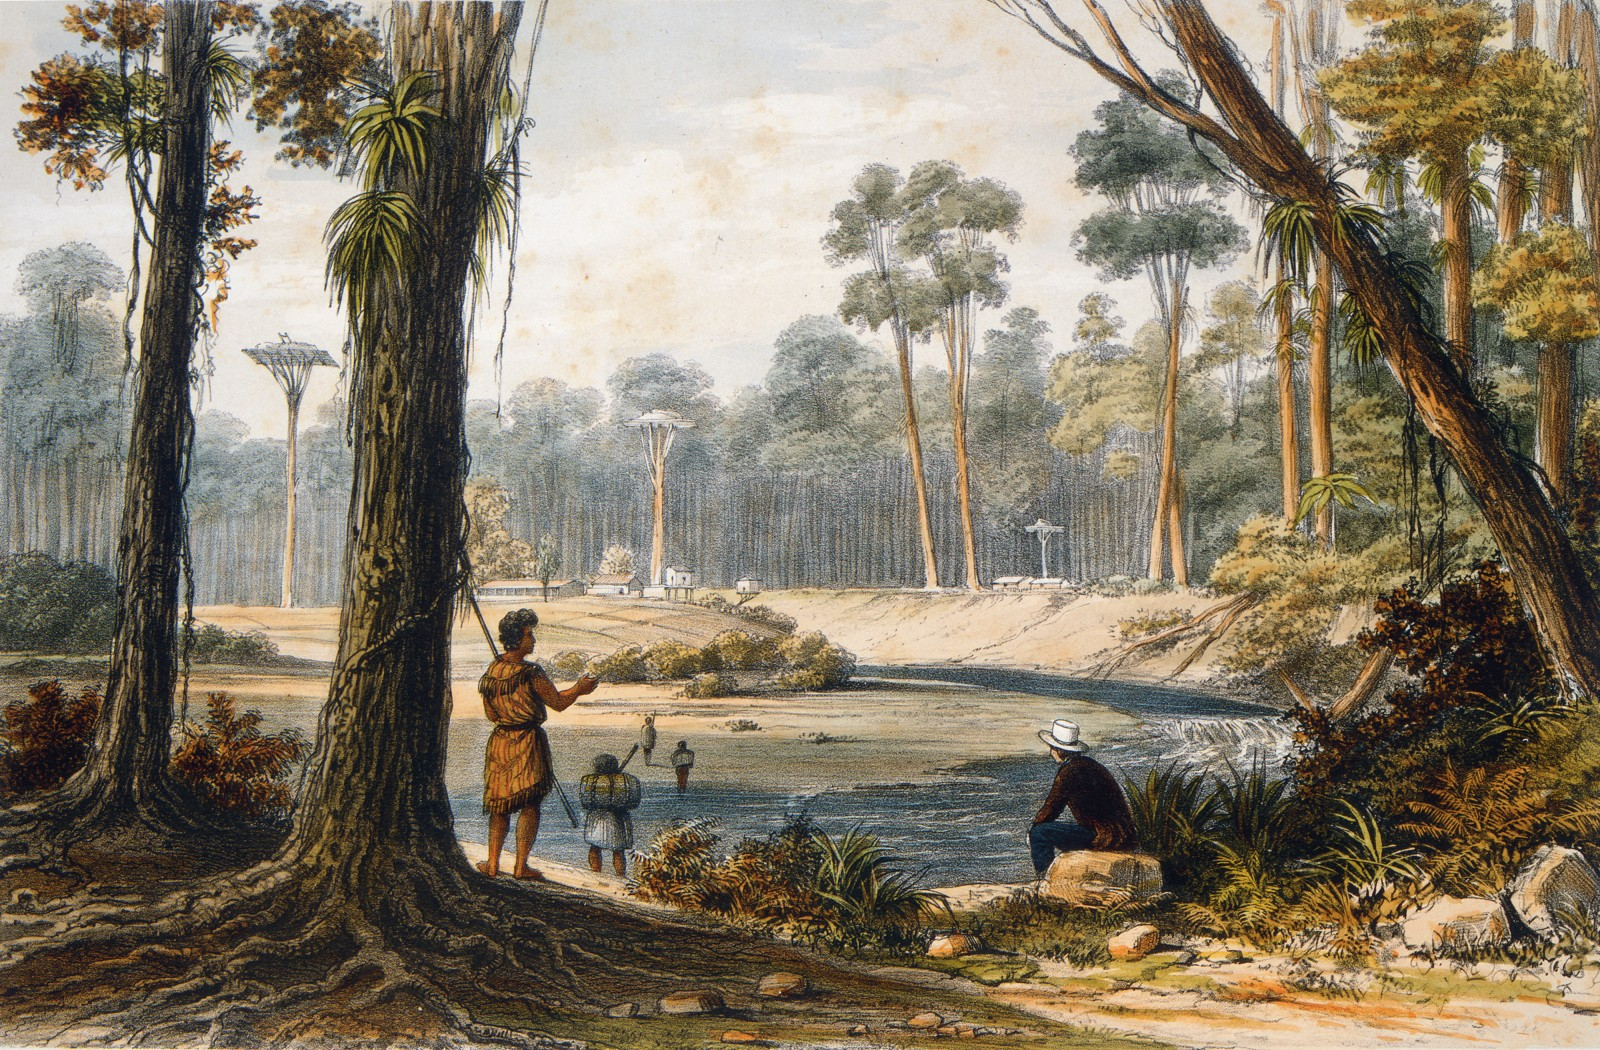 "Four years before he signed on as draughtsman for the Beagle voyage, London-born travel artist Augustus Earle lived and painted in Northland. He sketched this scene, depicting legendary Nga Puhi chief Patuone's ""country residence"", during a journey in 1827 from the Hokianga Harbour to the Bay of Islands, through thick kauri forest. Earle described being ""kindly entertained by the chief"", and noted that Patuone's crops of kumara and maize ""arrived at a perfection never before witnessed"". Darwin, by contrast, was uncomplimentary about Maori life."